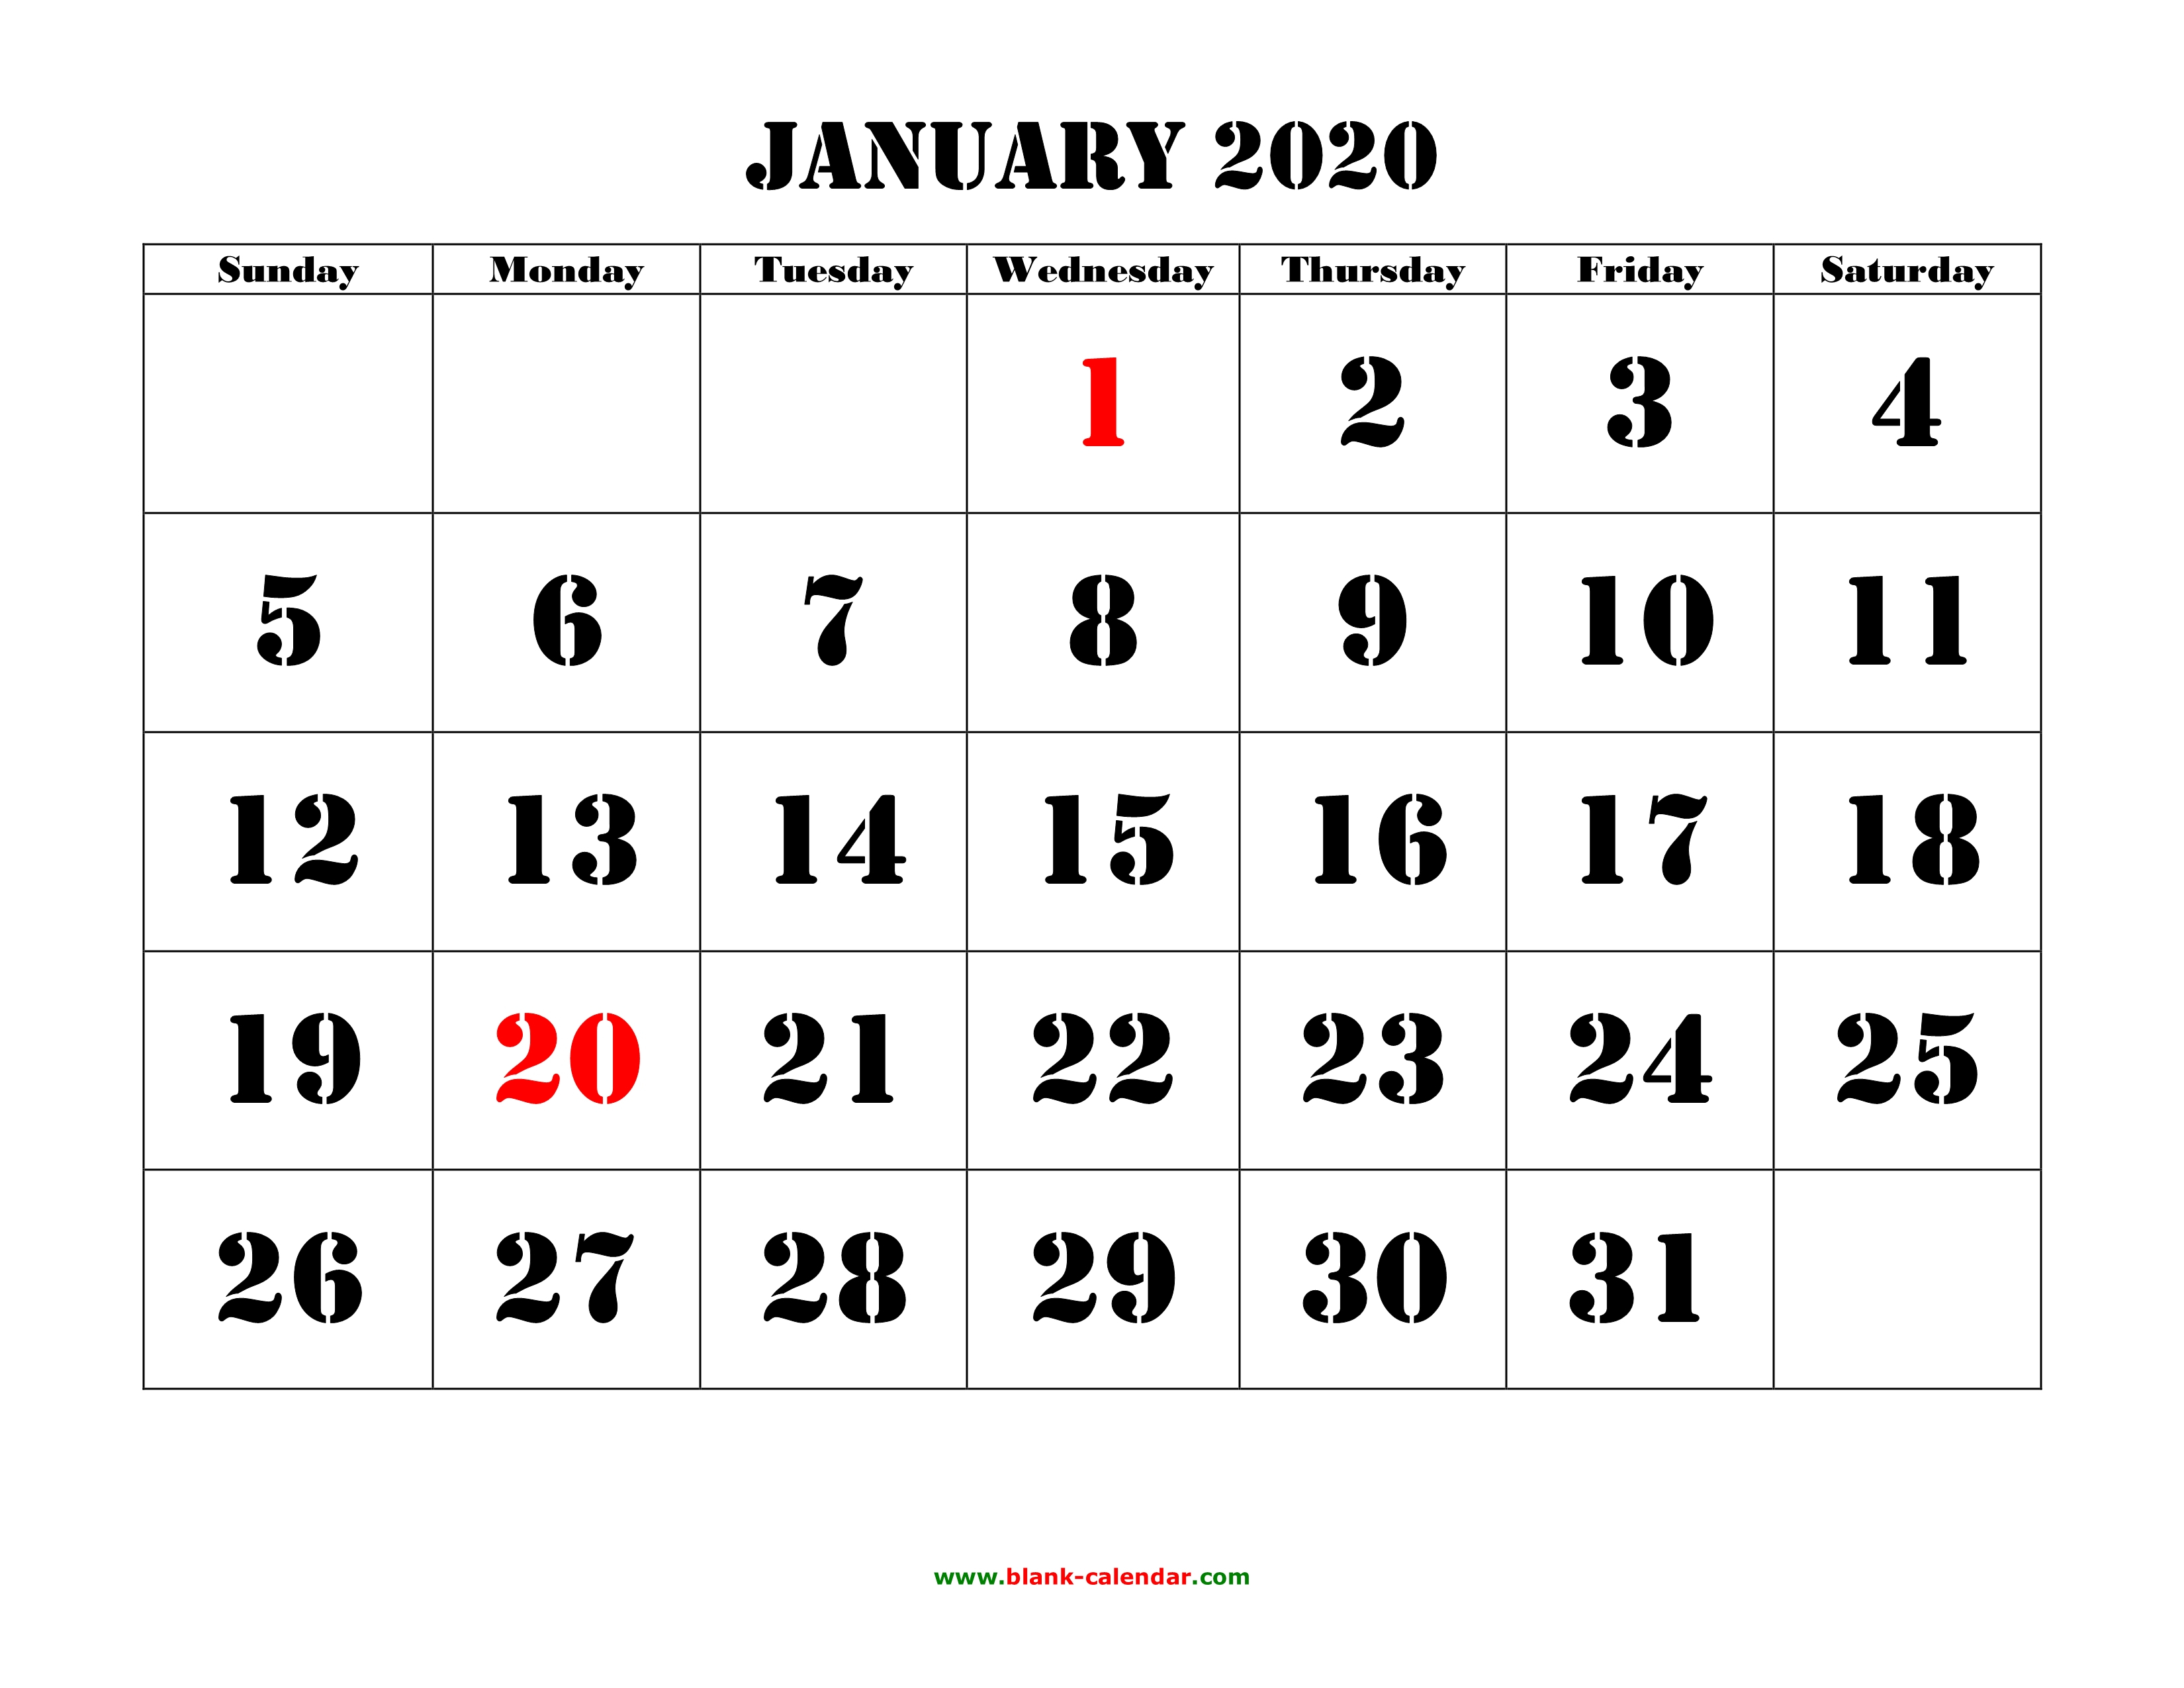 Printable Monthly Calendar 2020 regarding Monthly Calendar With Time Slots 2020